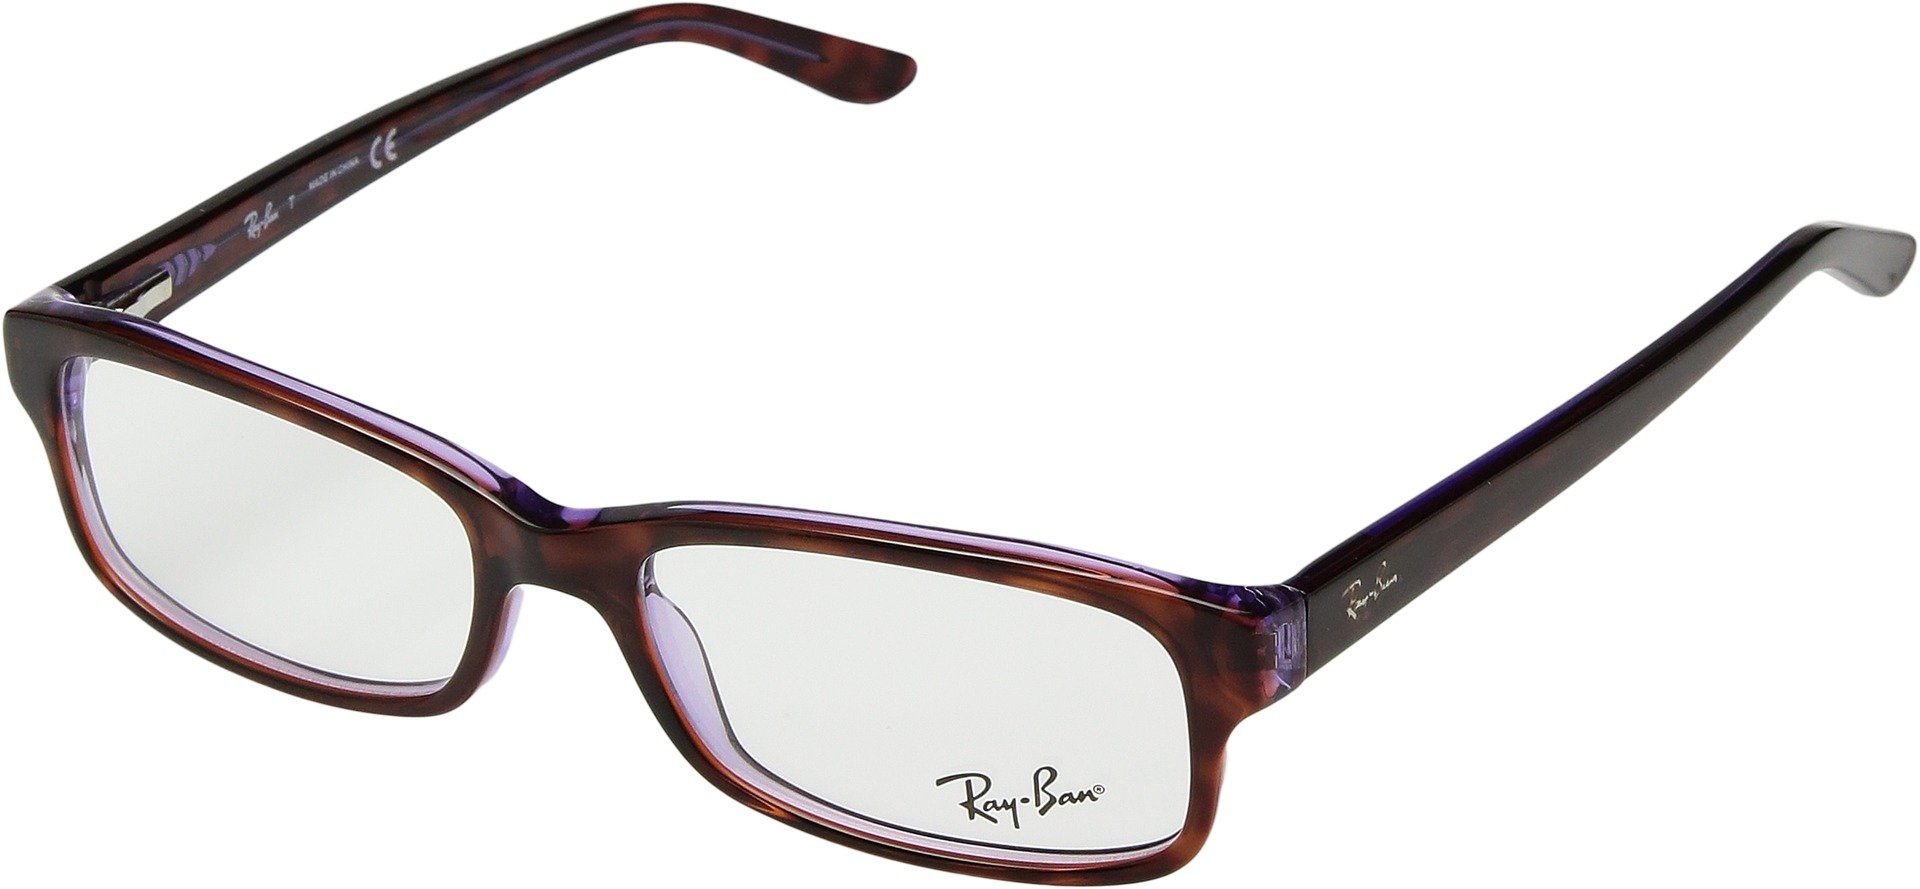 Ray-Ban Unisex 0RX5187 52mm Havana/Violet One Size